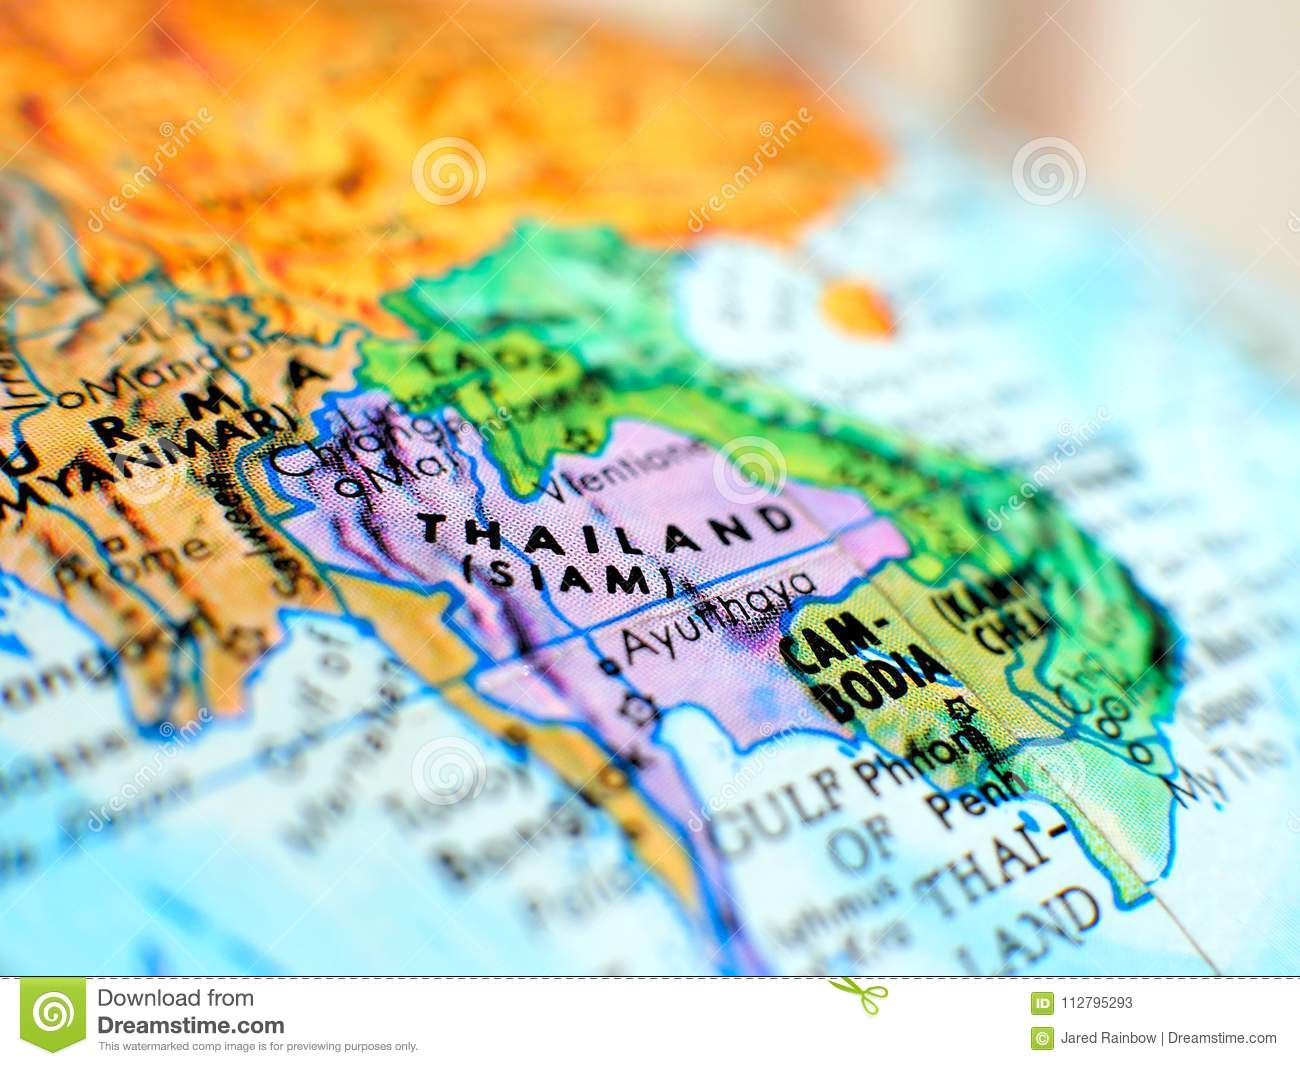 Thailand Asia focus macro shot on globe map for travel blogs, social media, website banners and backgrounds.